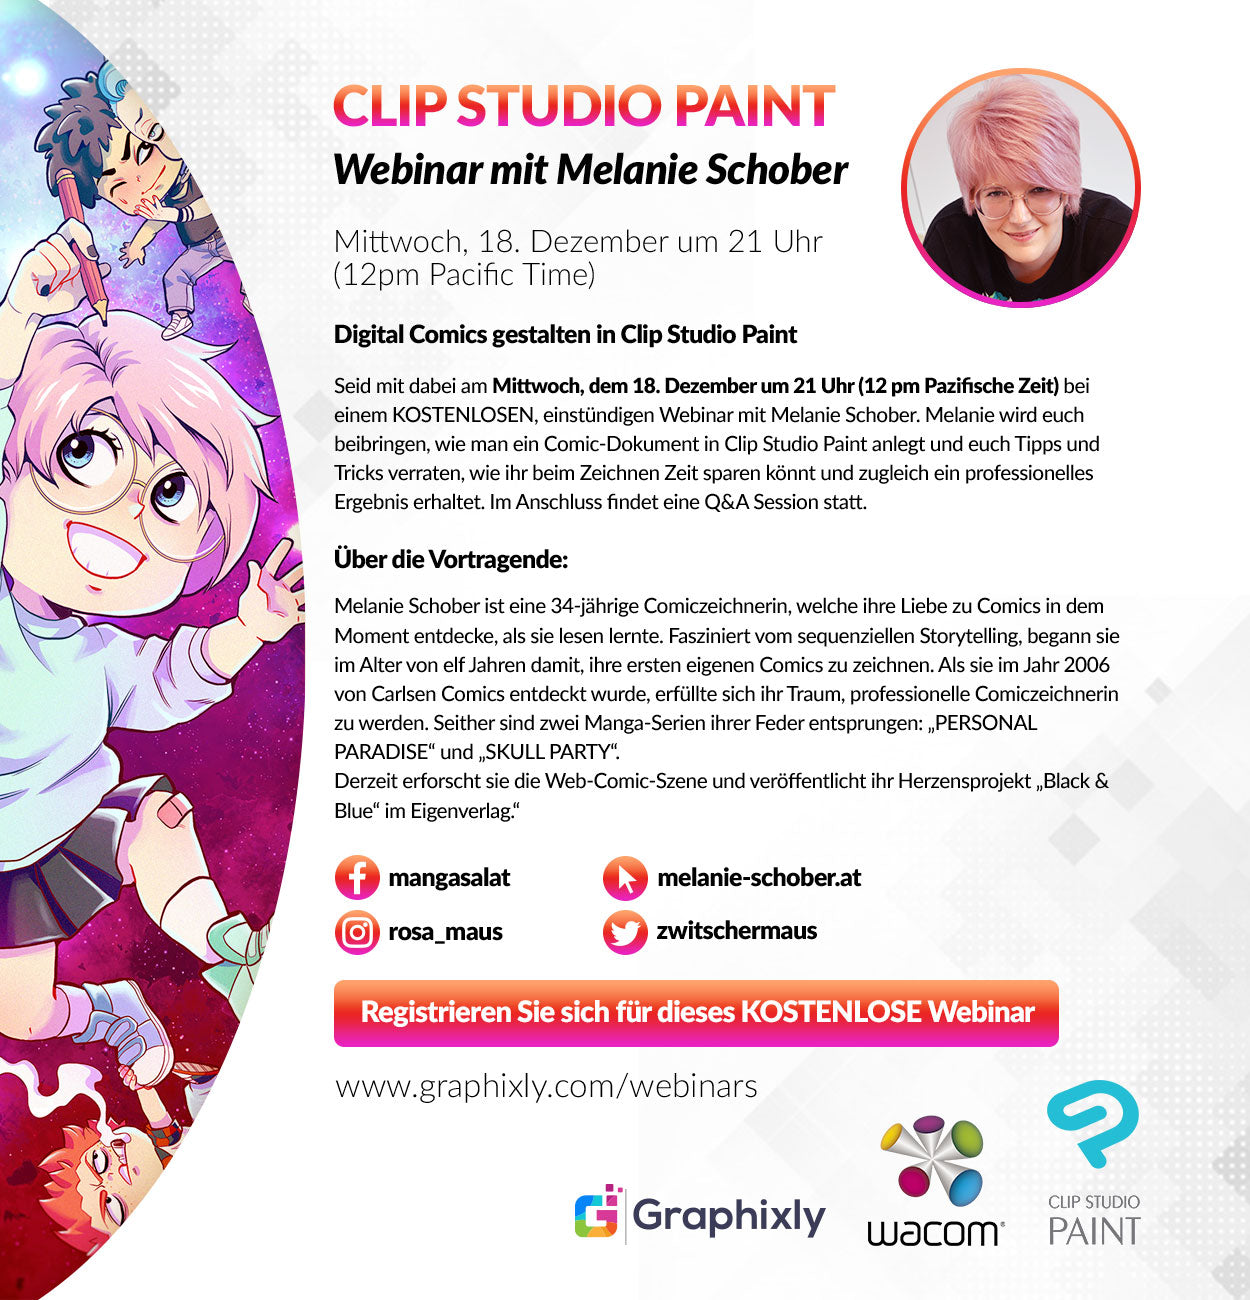 Webinar (Deutch) - Digital Comics gestalten in Clip Studio Paint